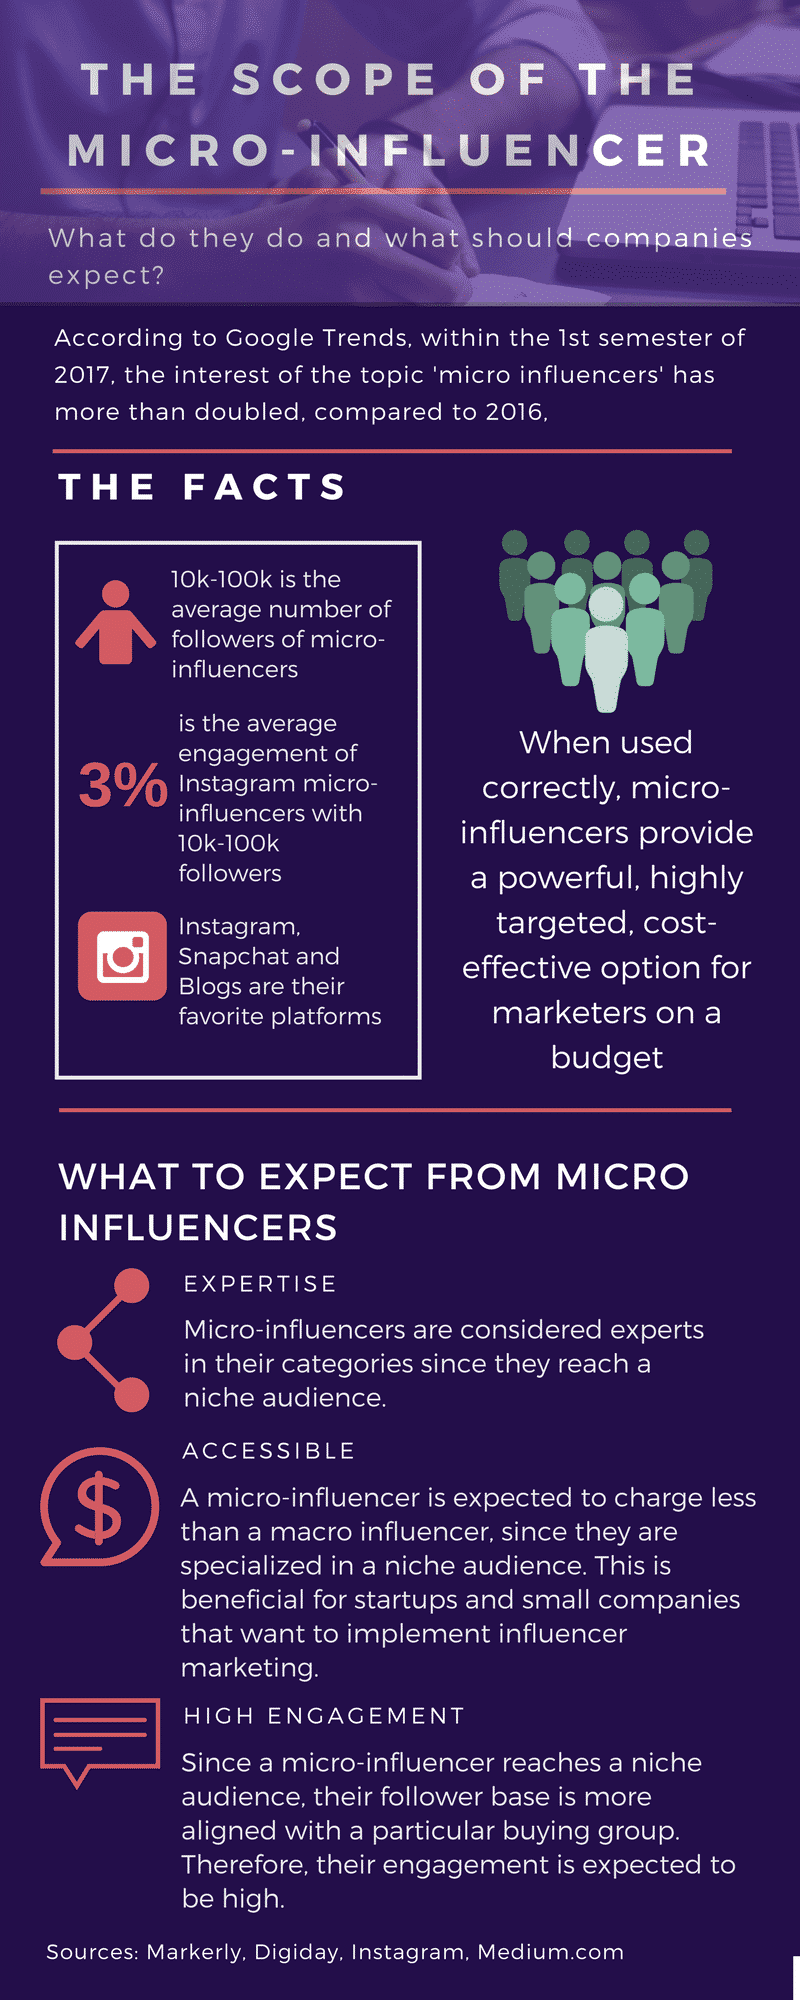 Learn more about the scope of the micro-influencer: what they do, and what companies should expect from them, in this great infographic.